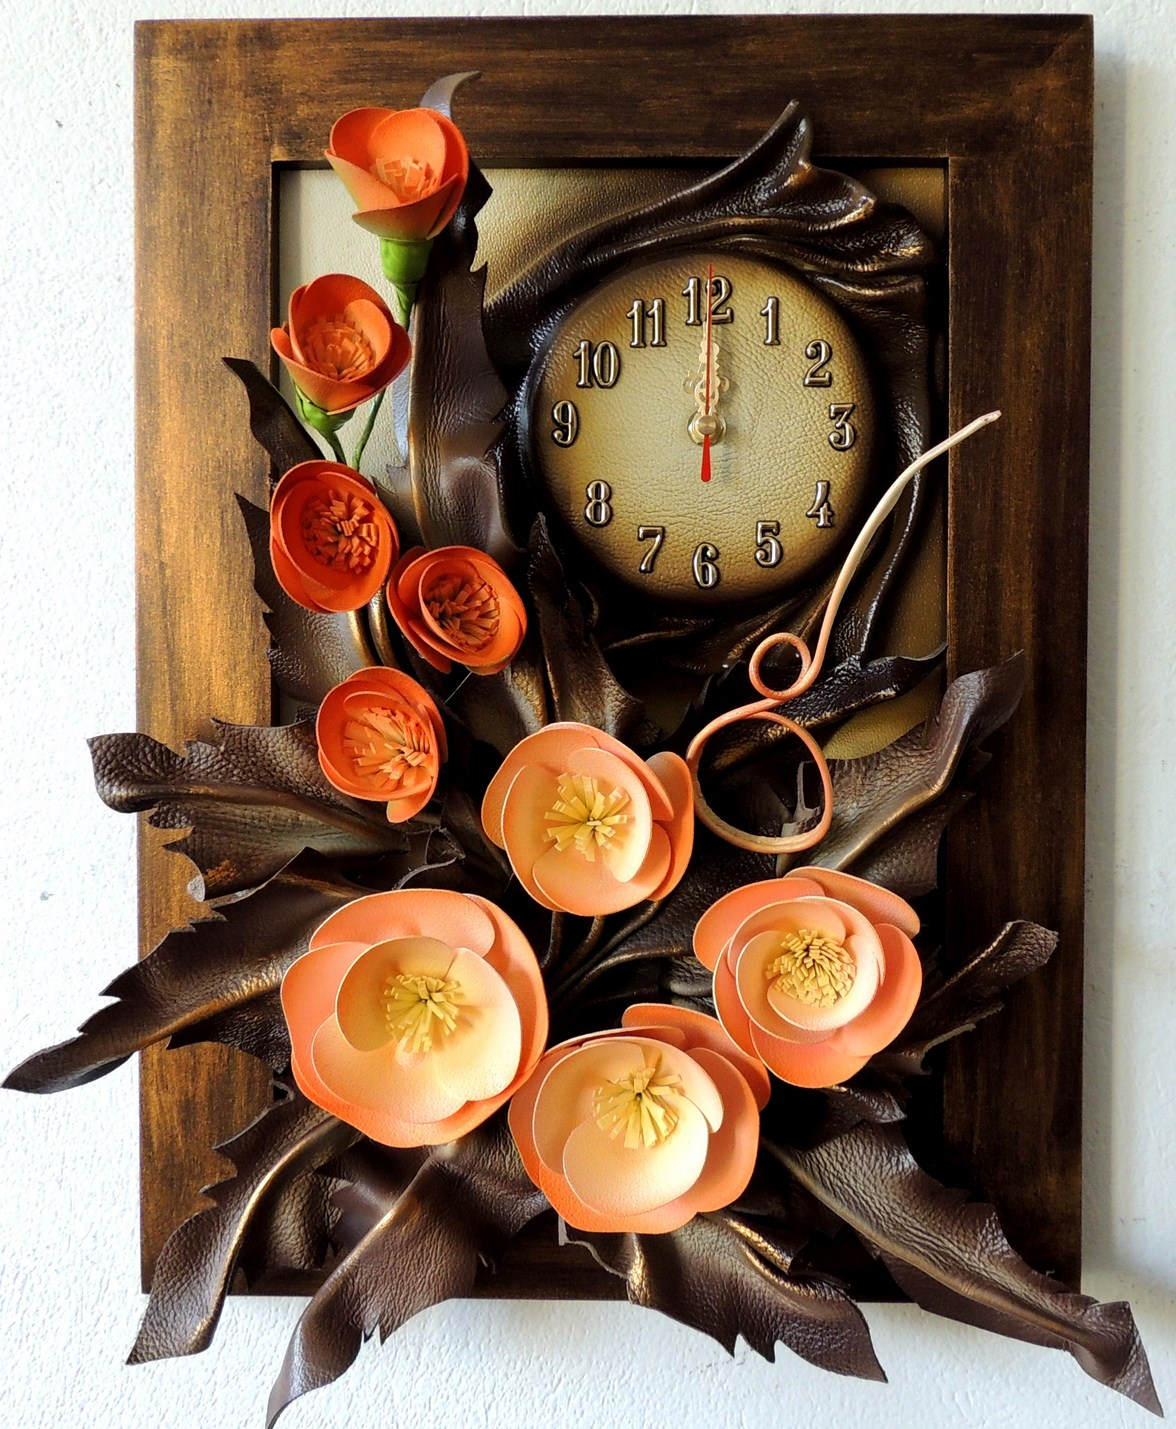 PROSTY I ELAGANCKI OBRAZ Z ZEGAREM. LEATHER CLOCK. POLISH PRODUCER. FOR MANY OCCASIONS.